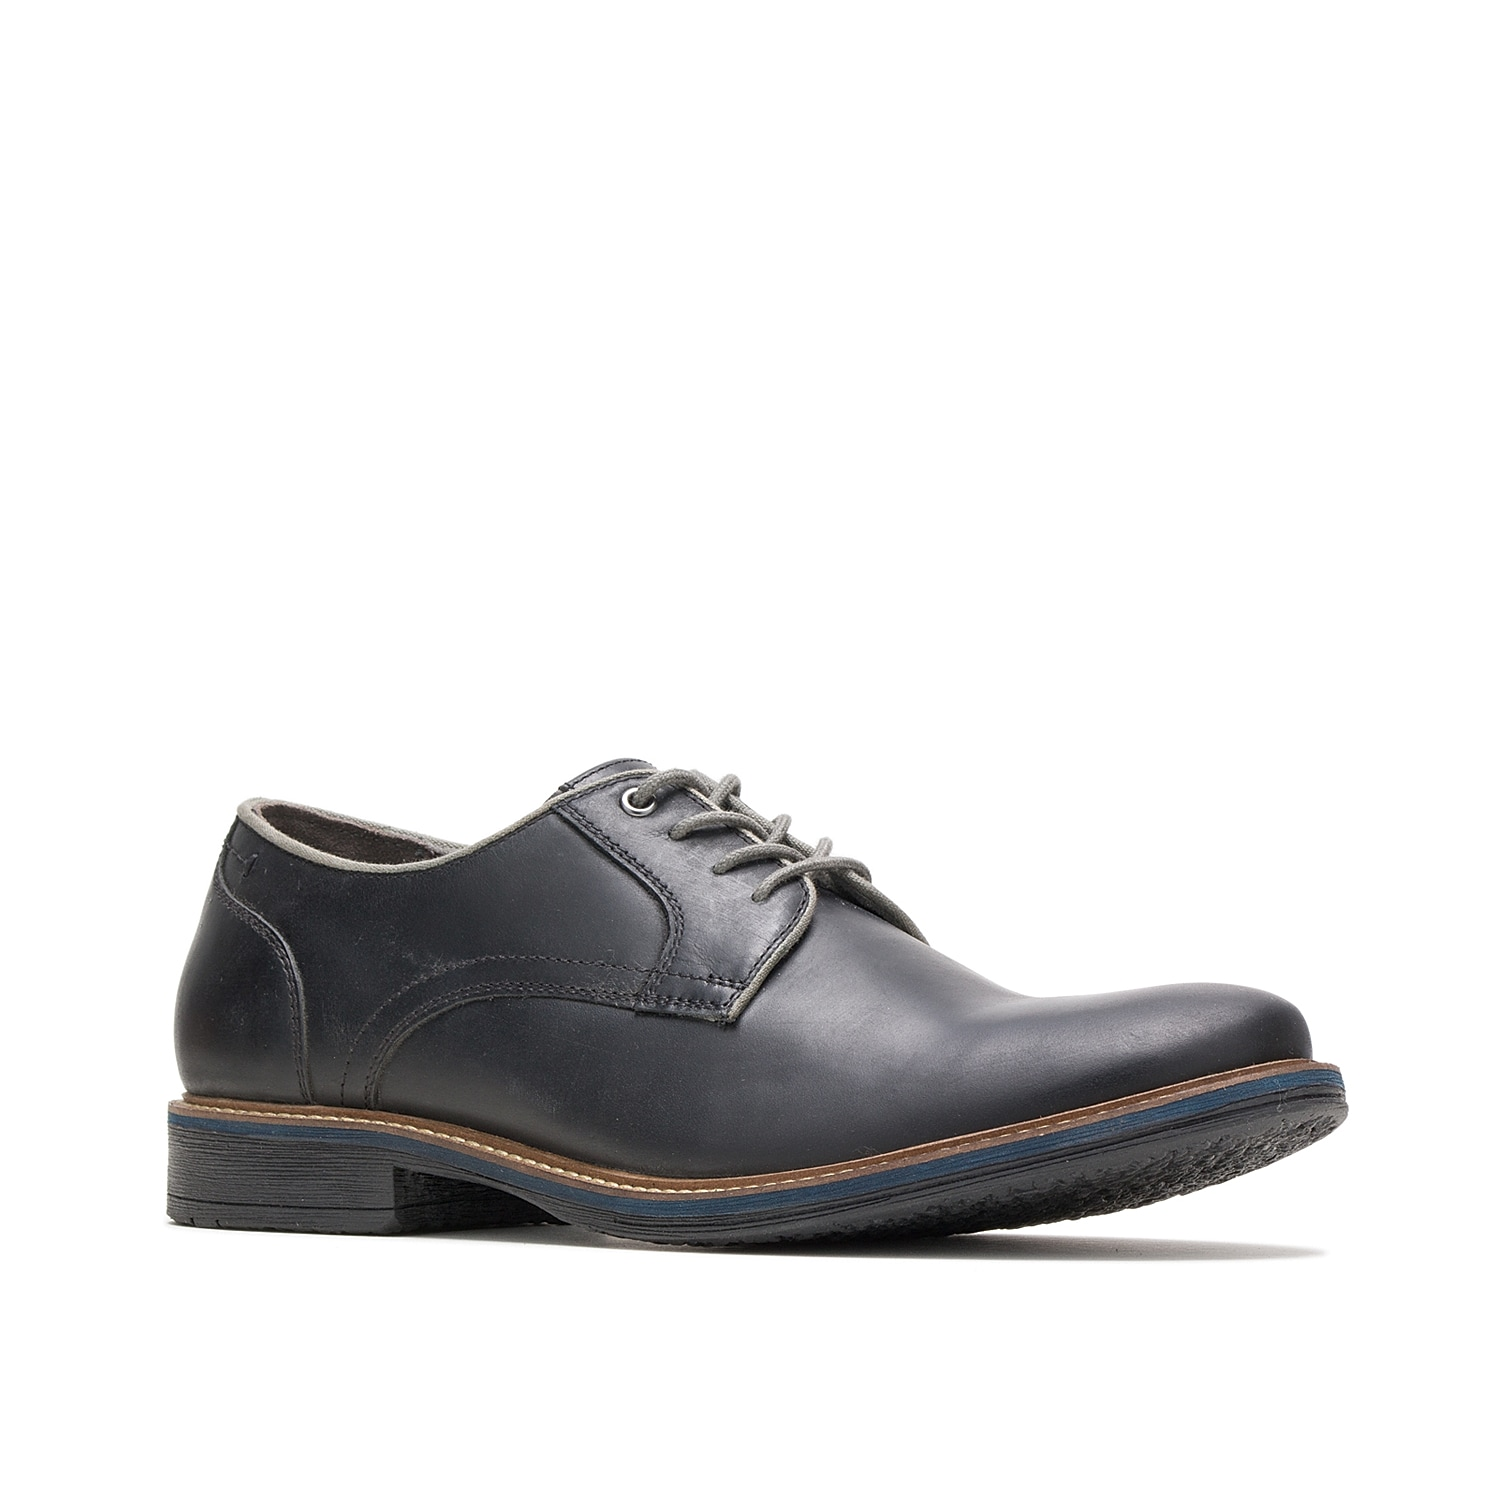 The Giles oxford from Hush Puppies features a contrasting midsole to add a modern pop of style to any outfit. A plush footbed keeps every step cushioned.